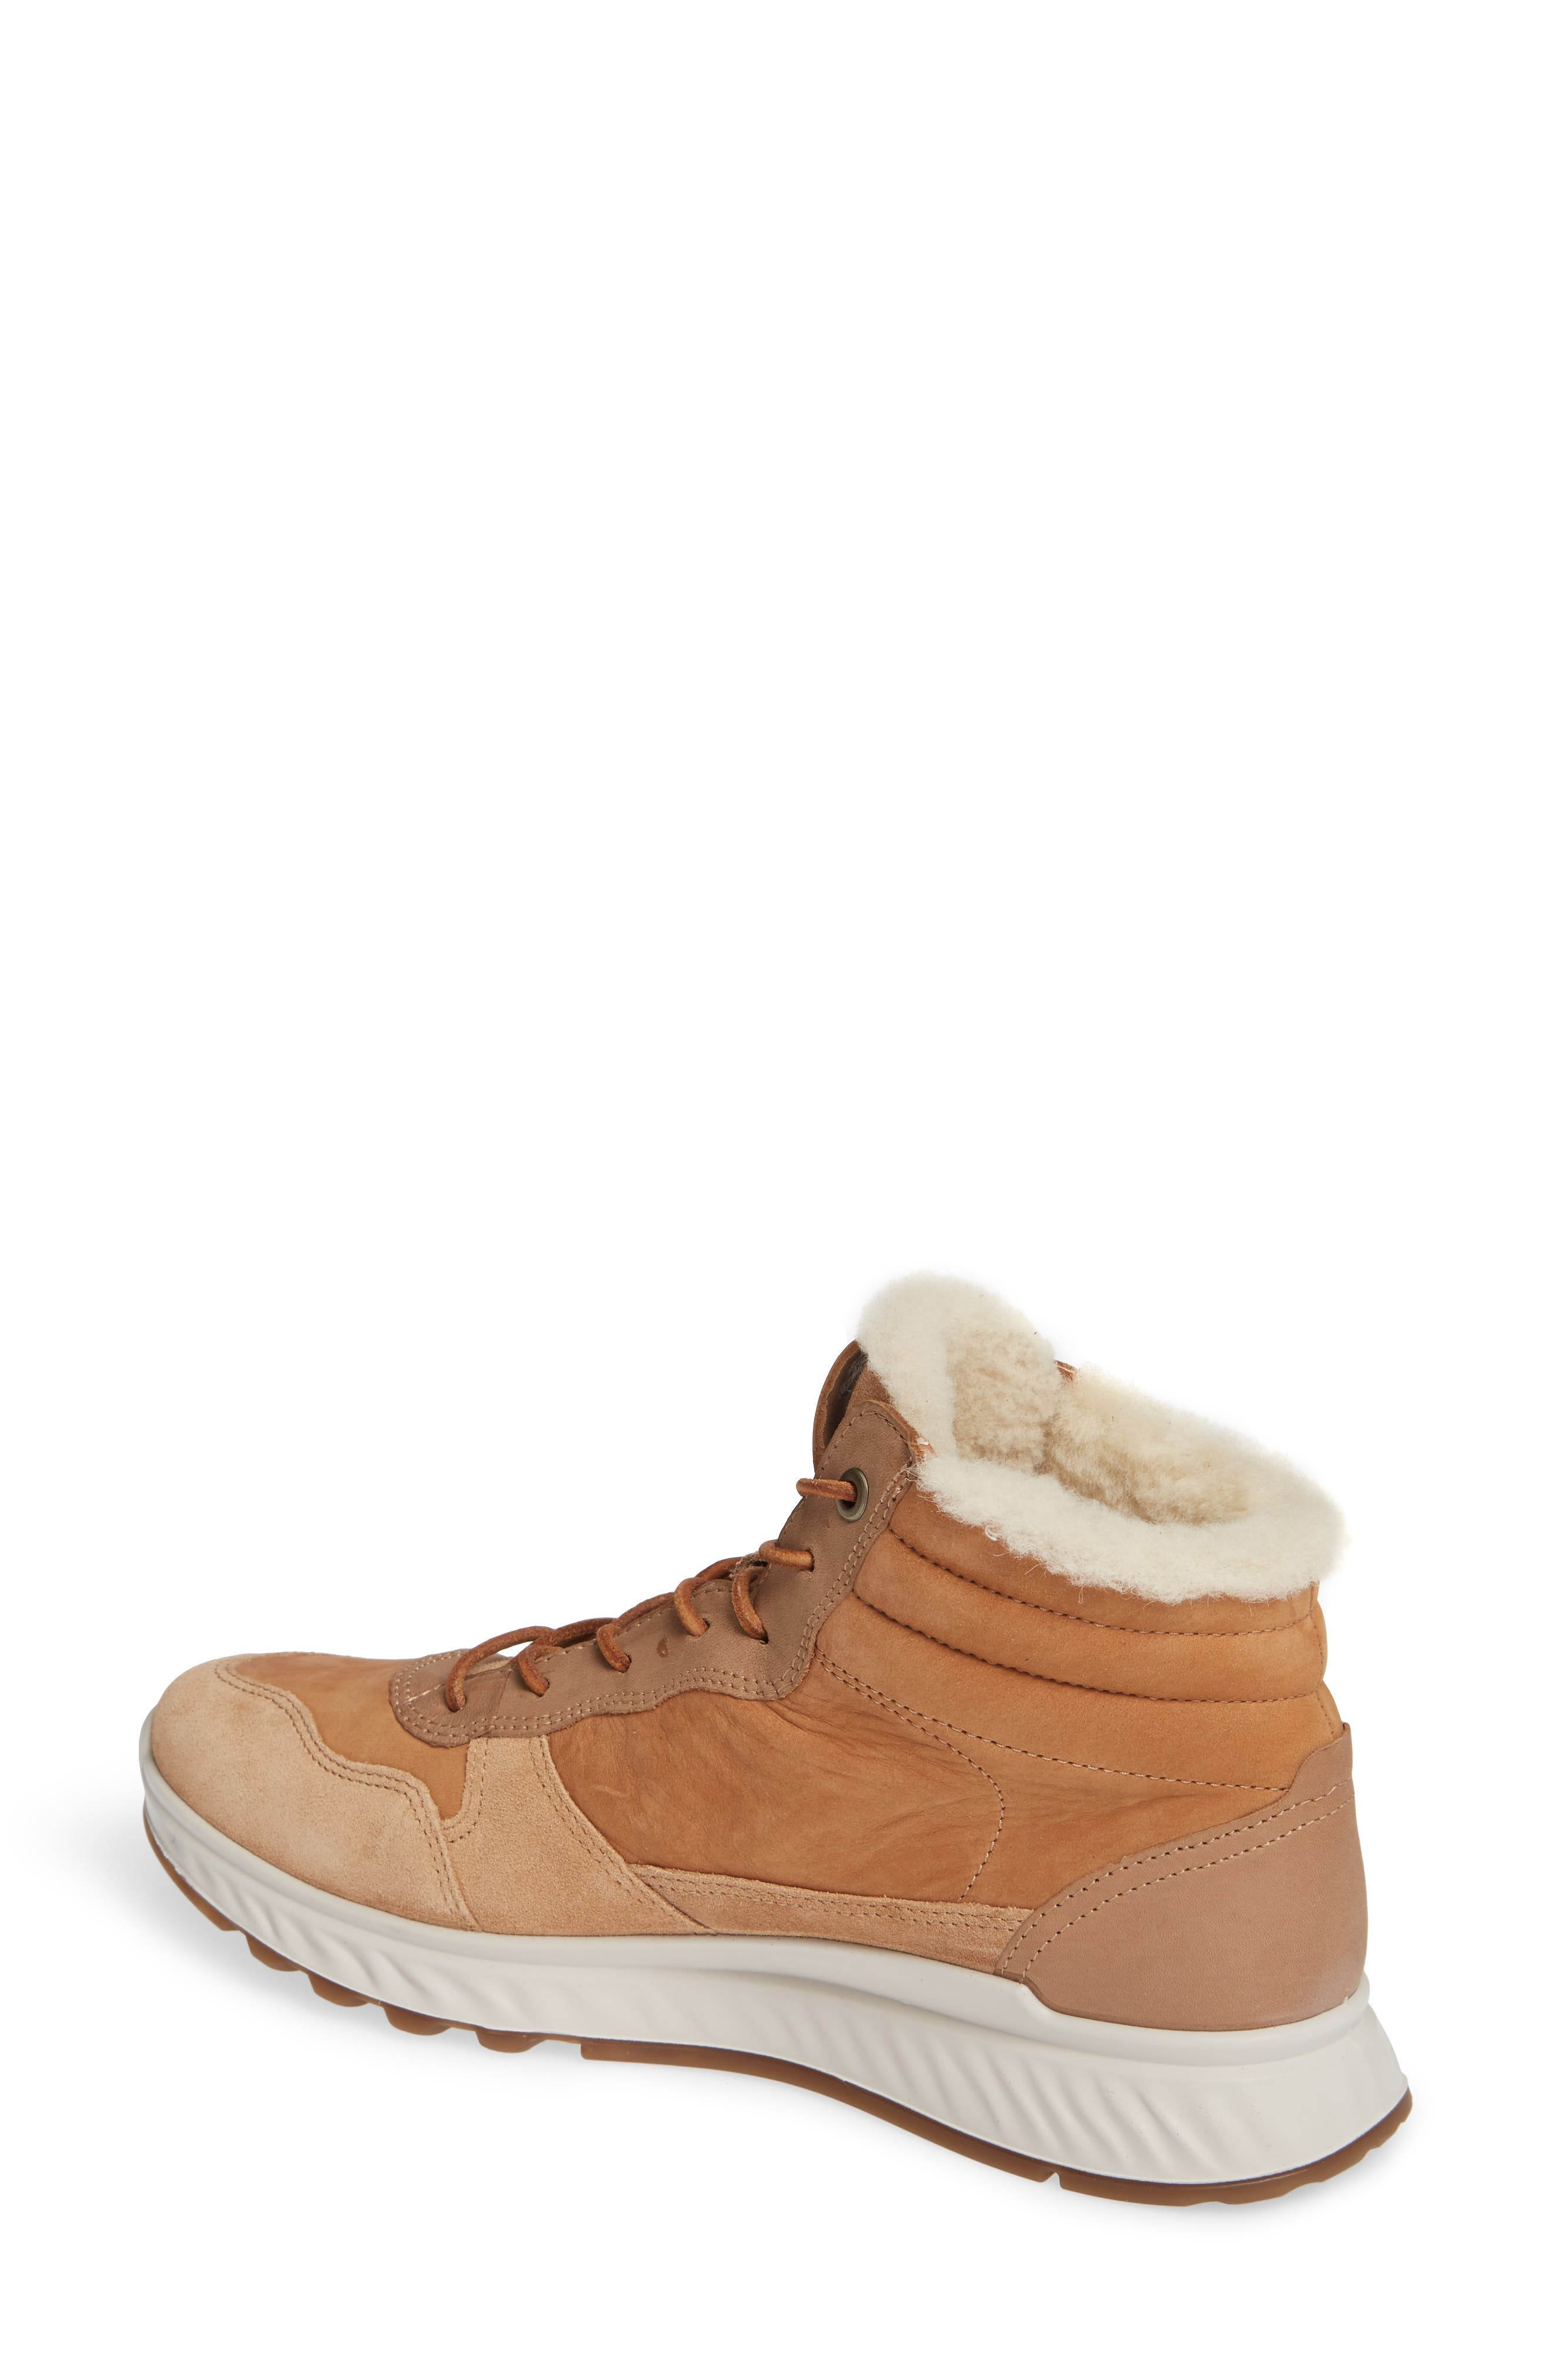 ST1 Genuine Shearling High Top Sneaker,                             Alternate thumbnail 2, color,                             200